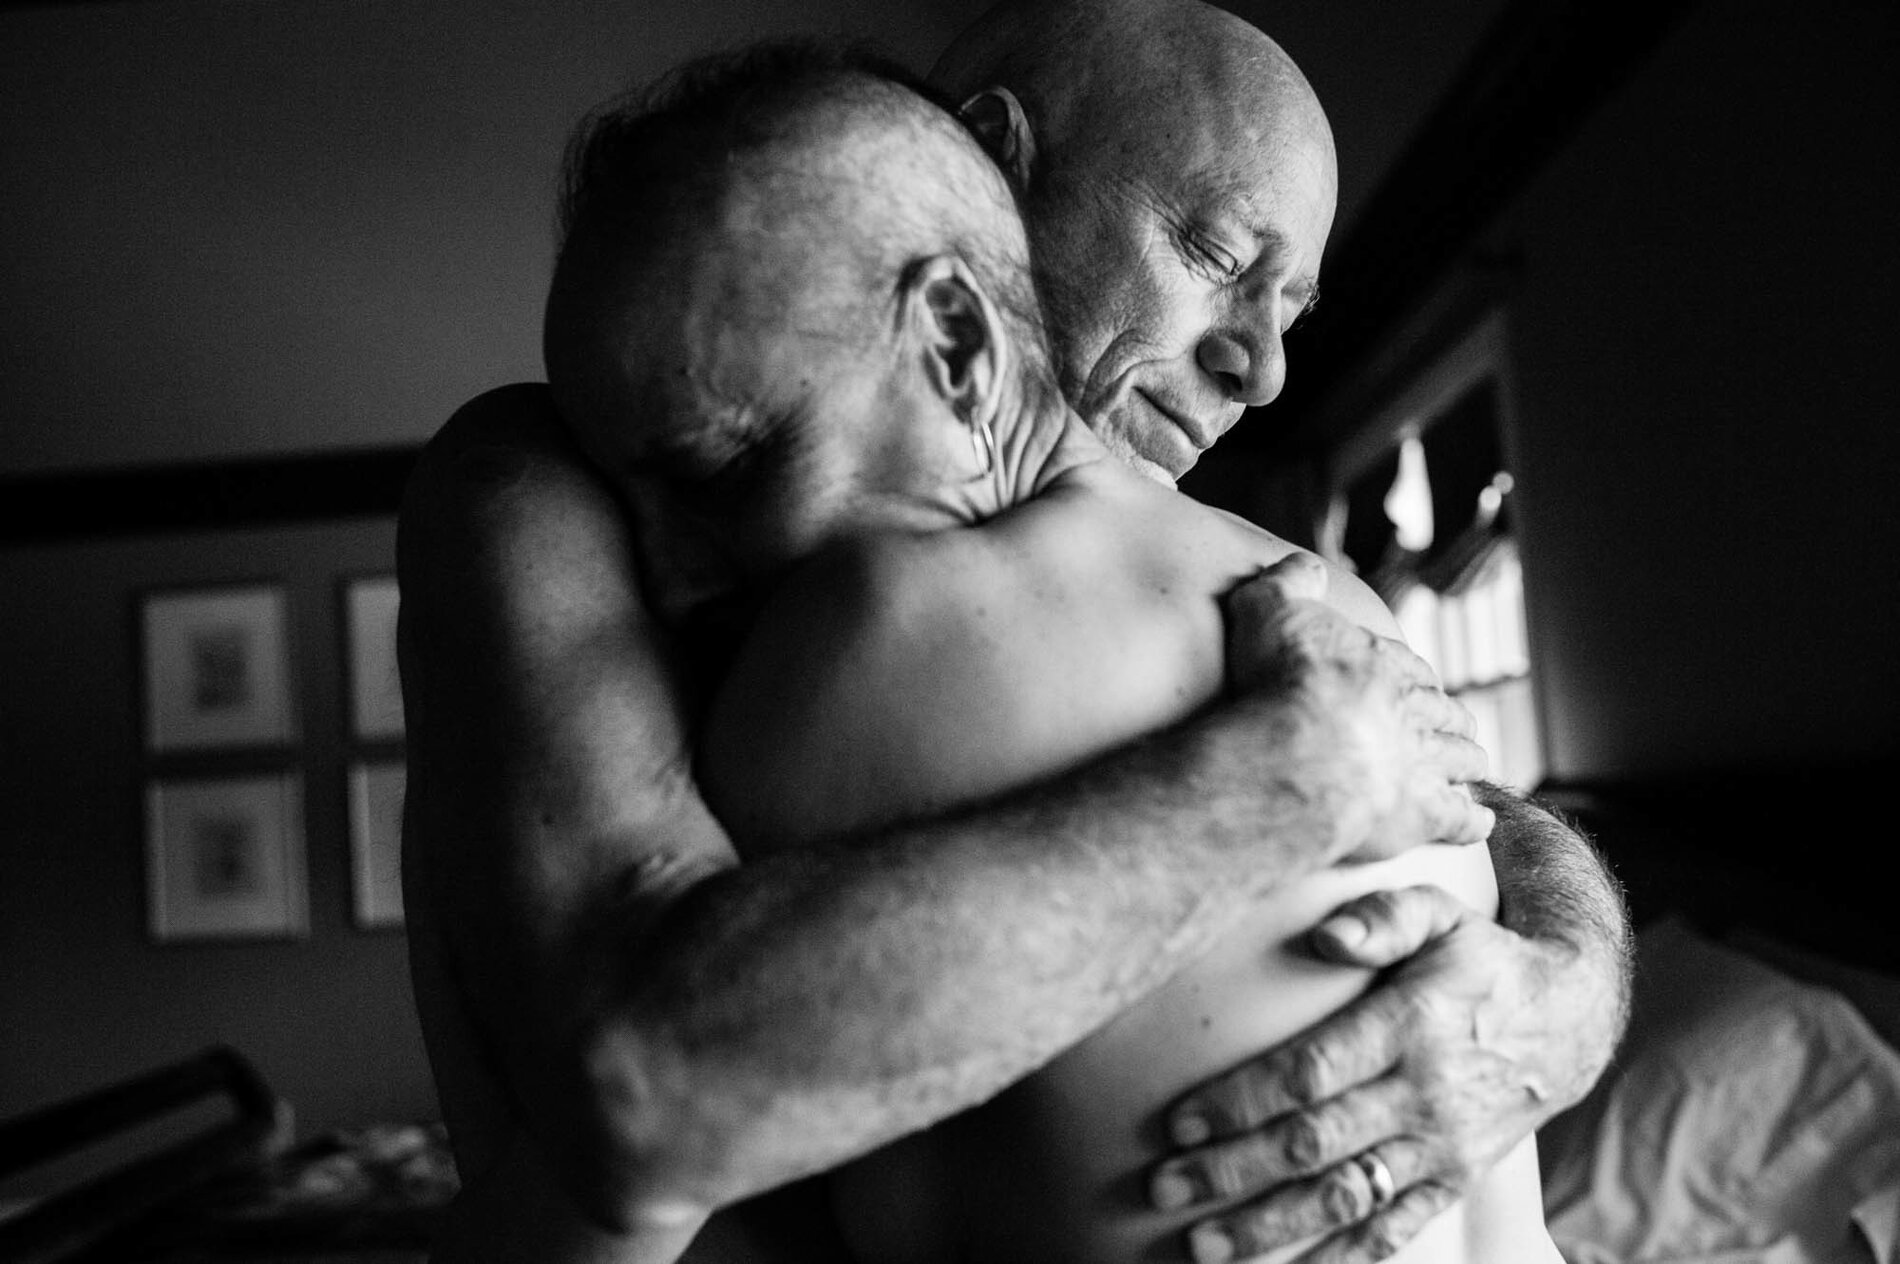 Dad and Mom embrace in the bedroom of their home. They never could have imagined both being in treatment for cancer at the same time. Together, they faced the daily struggles of illness in their own lives while also caring for each other.     (Nancy Borowick)